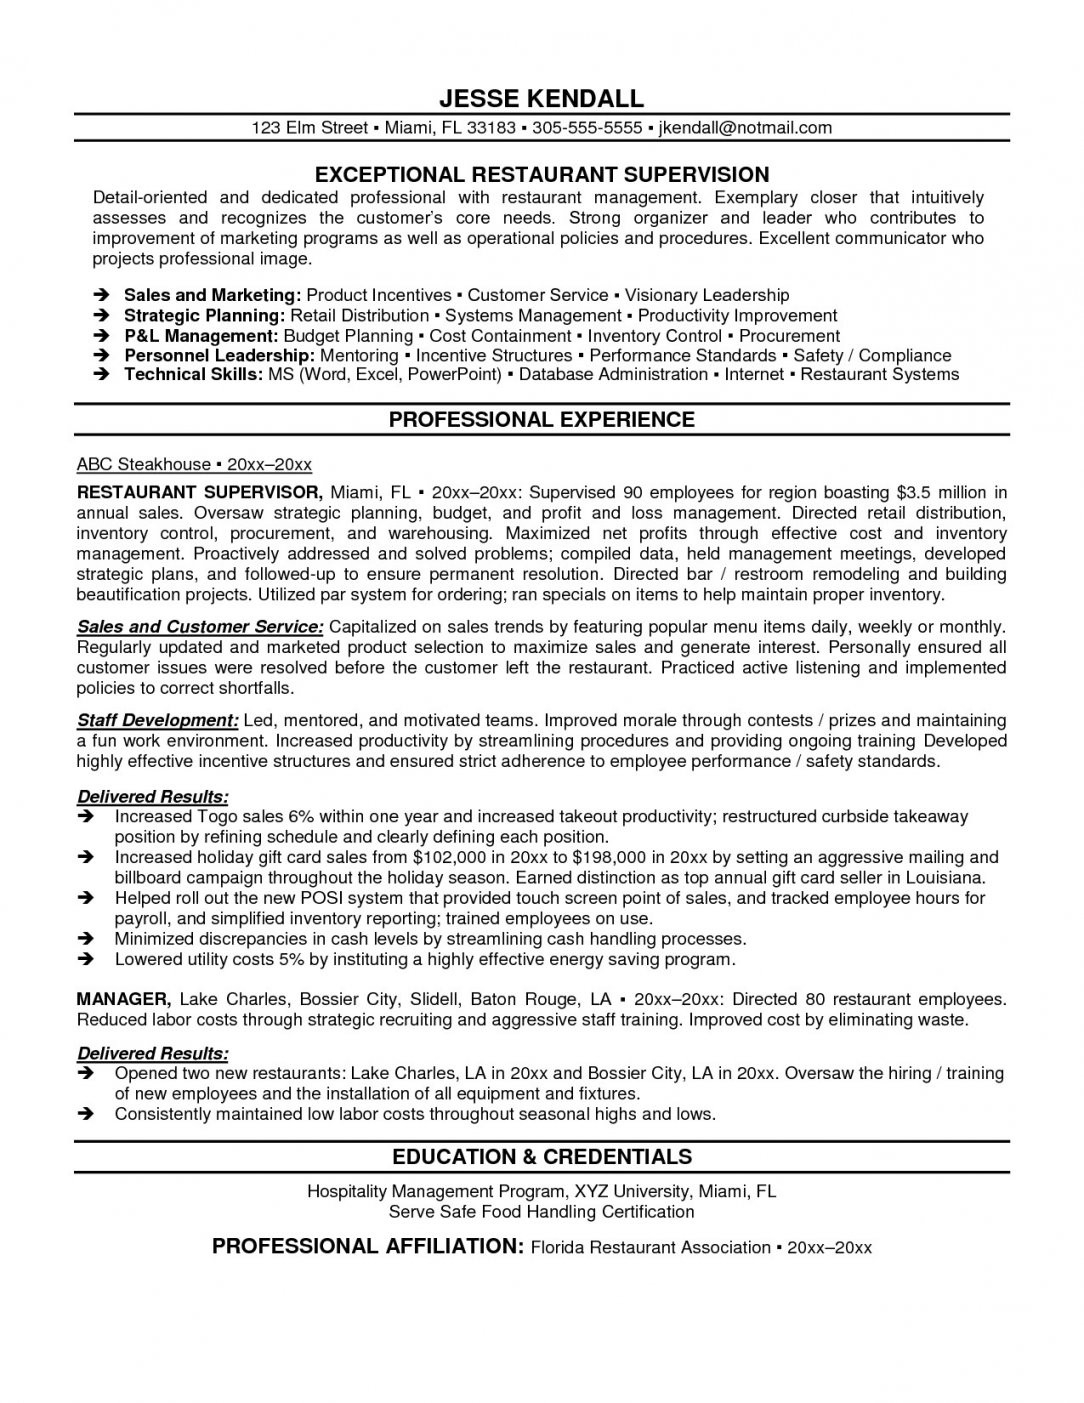 Restaurants Manager Resume - Restaurant Manager Resume Elegant Supervisor Resume Examples Free